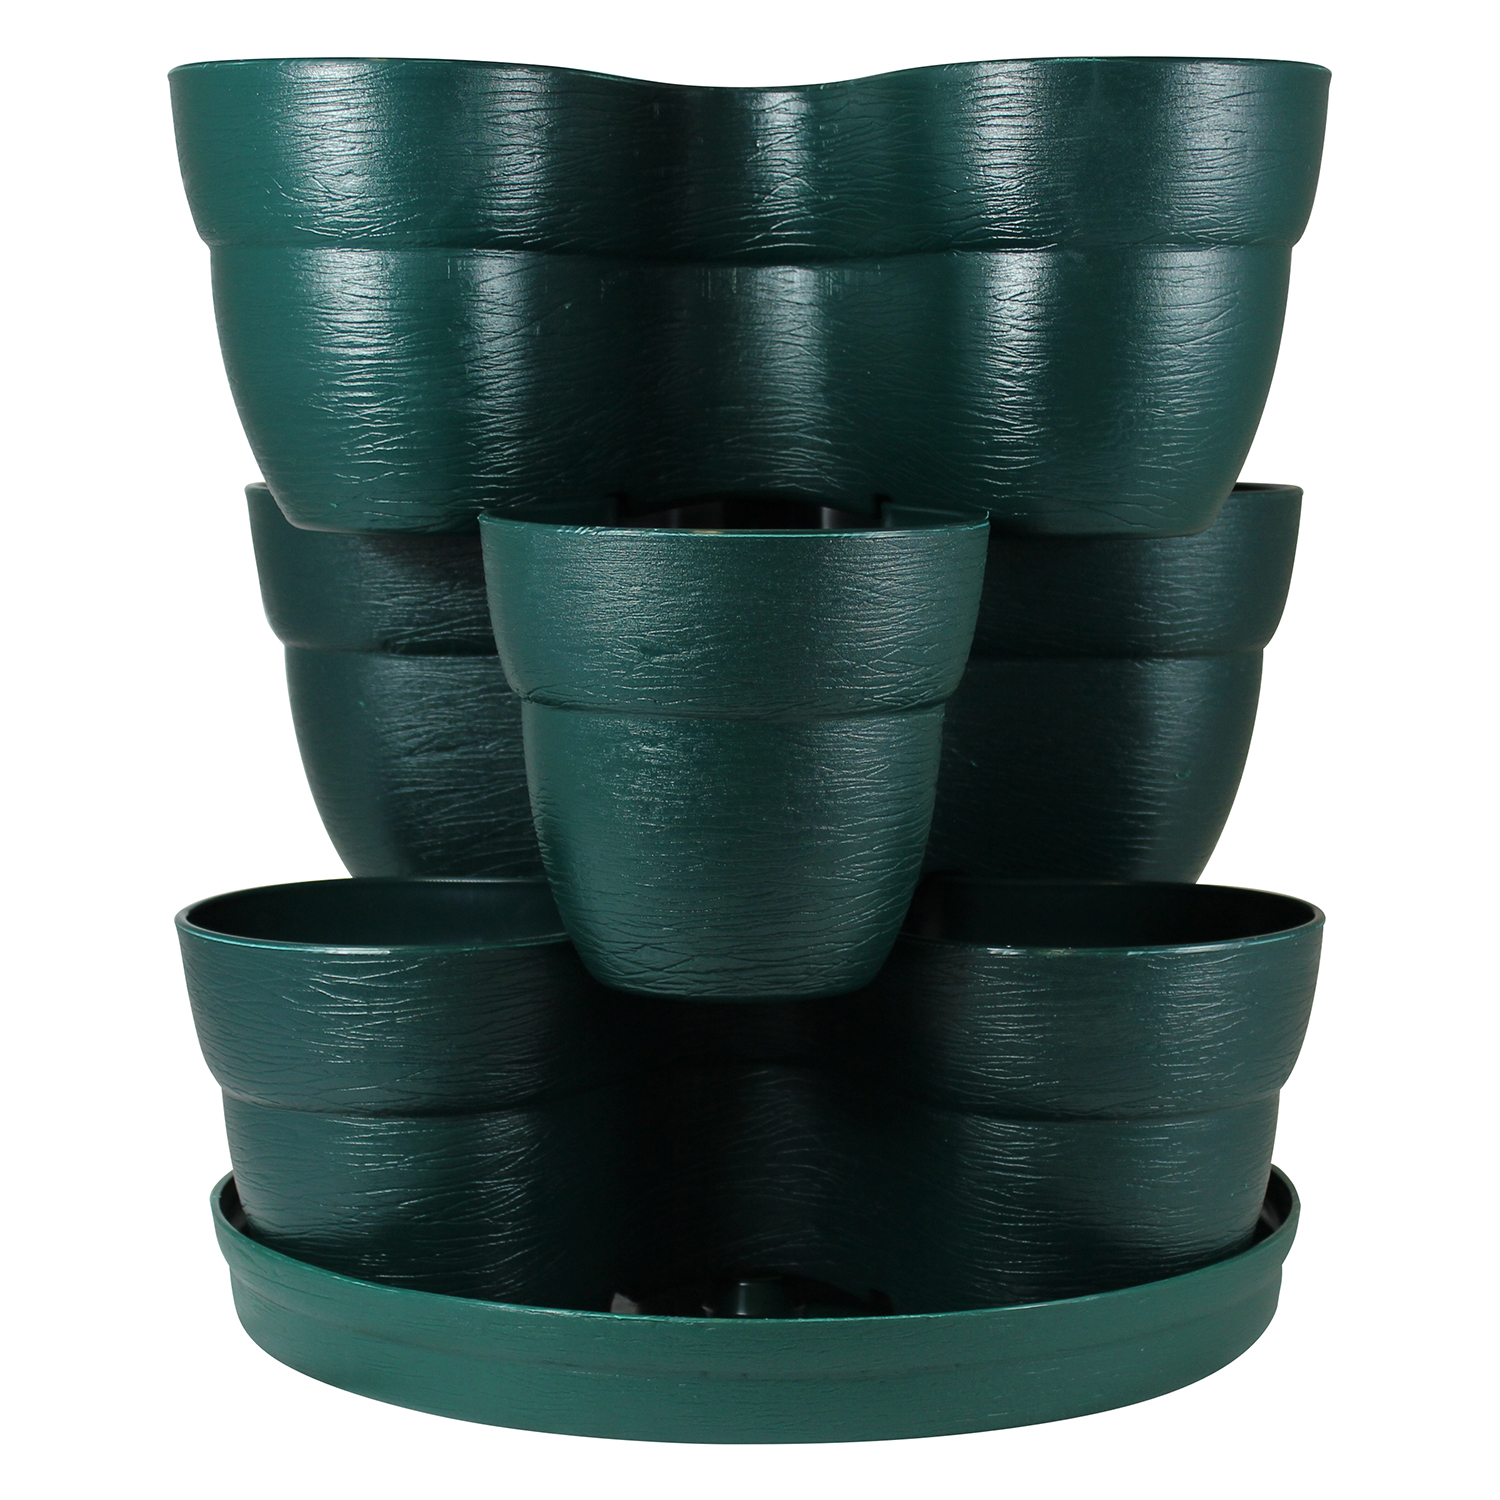 Bloomers Stackable Flower Tower Planter – Holds up to 9 Plants – Great Both Indoors and Outdoors – Hunter Green